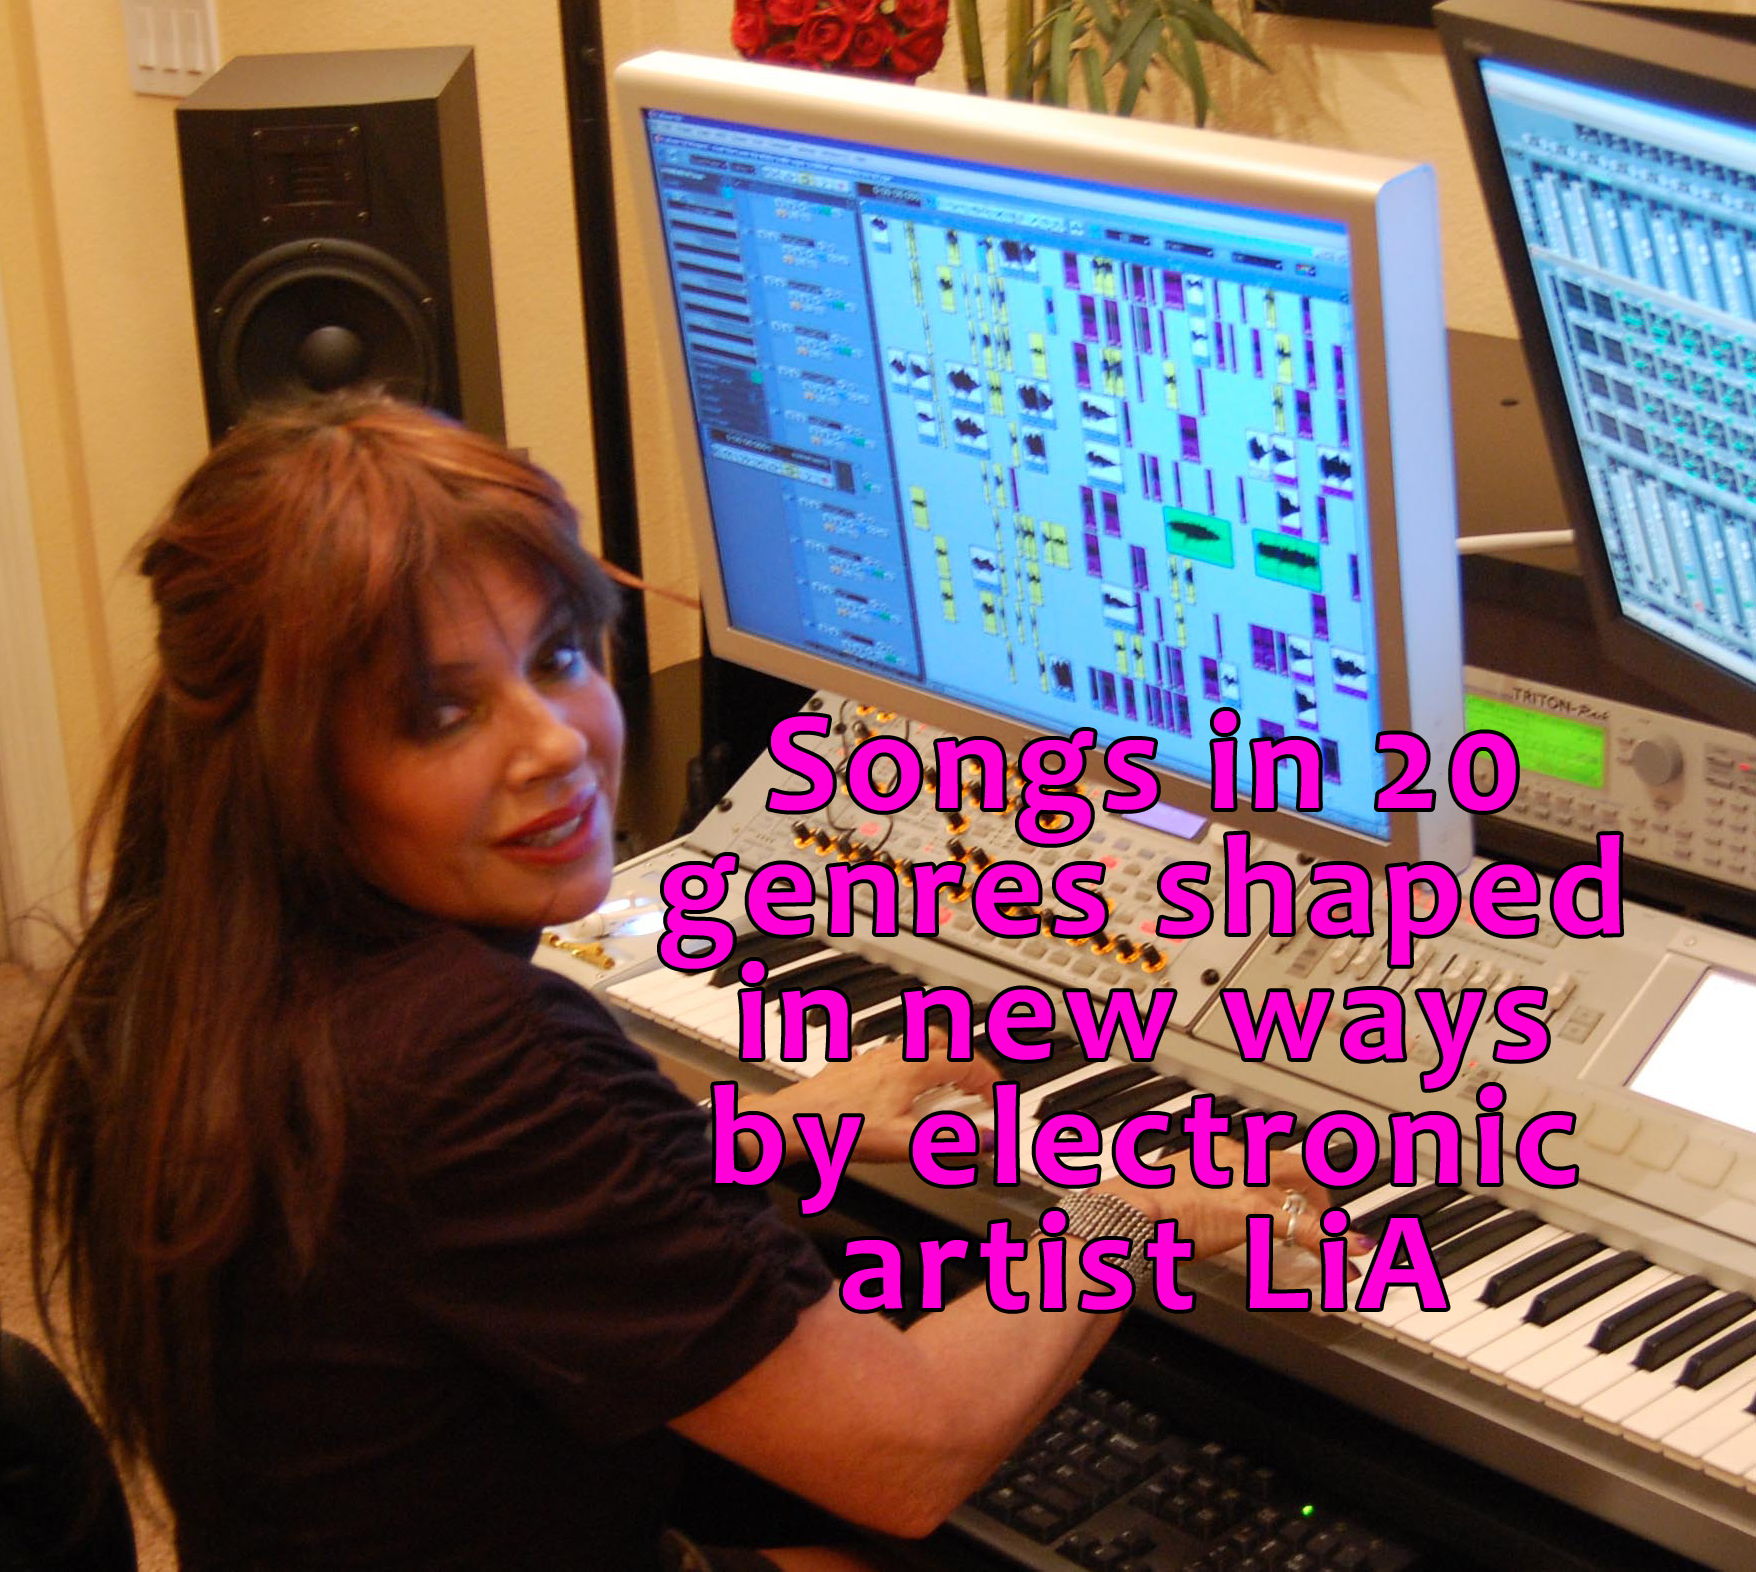 Lia, the songwriter, performer, sound designer, mixer, engineer and producer of ALiEn TRiBe has recorded songs in over 20 genres featured on her 9 albums